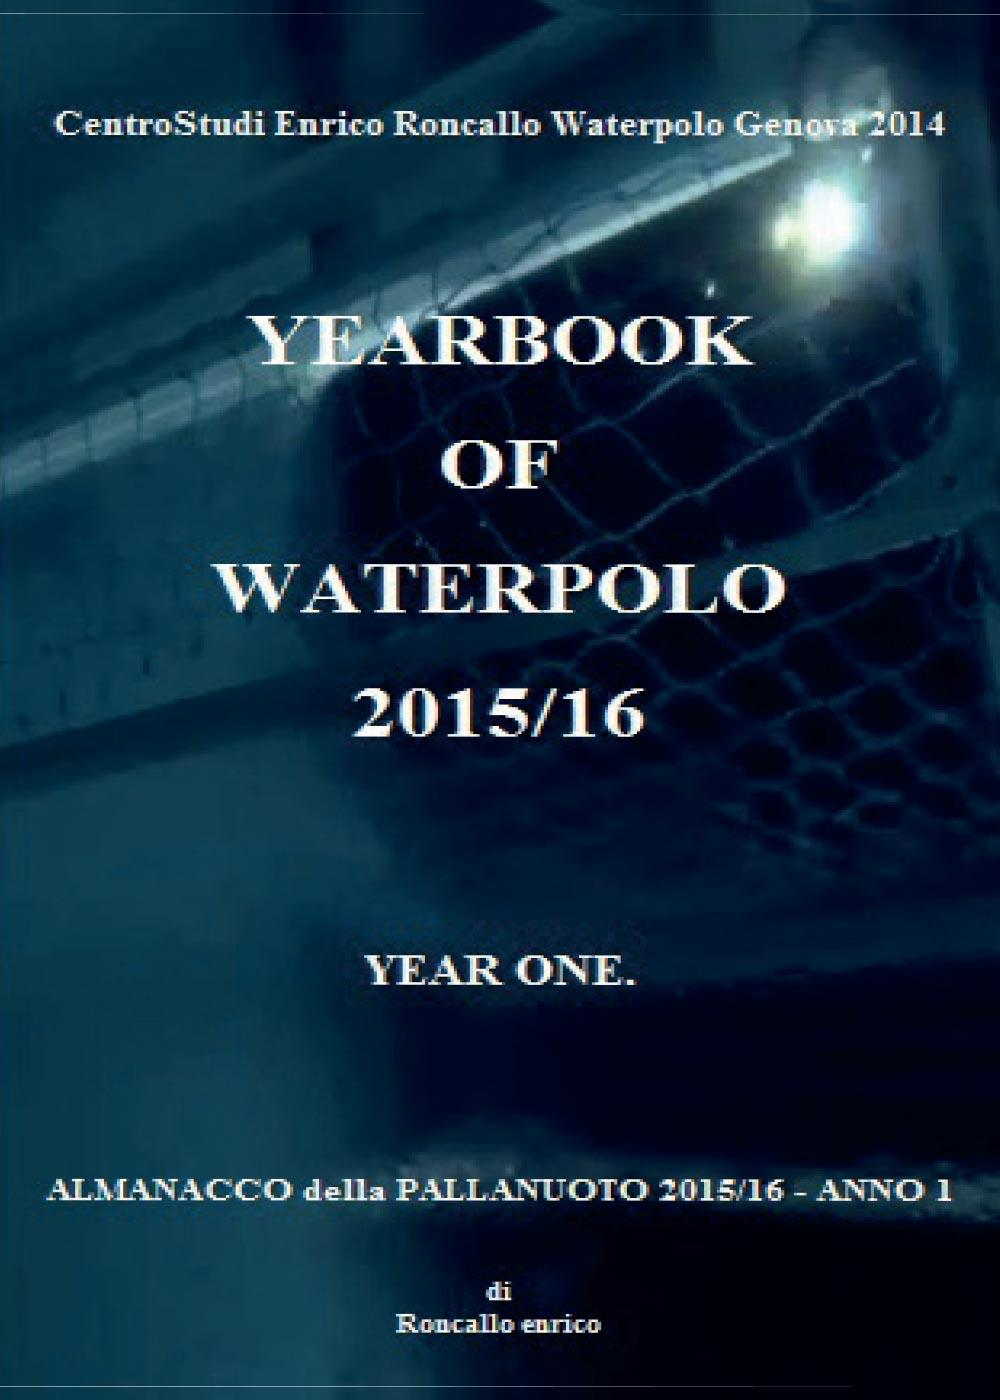 Yearbook of waterpolo 2015/16